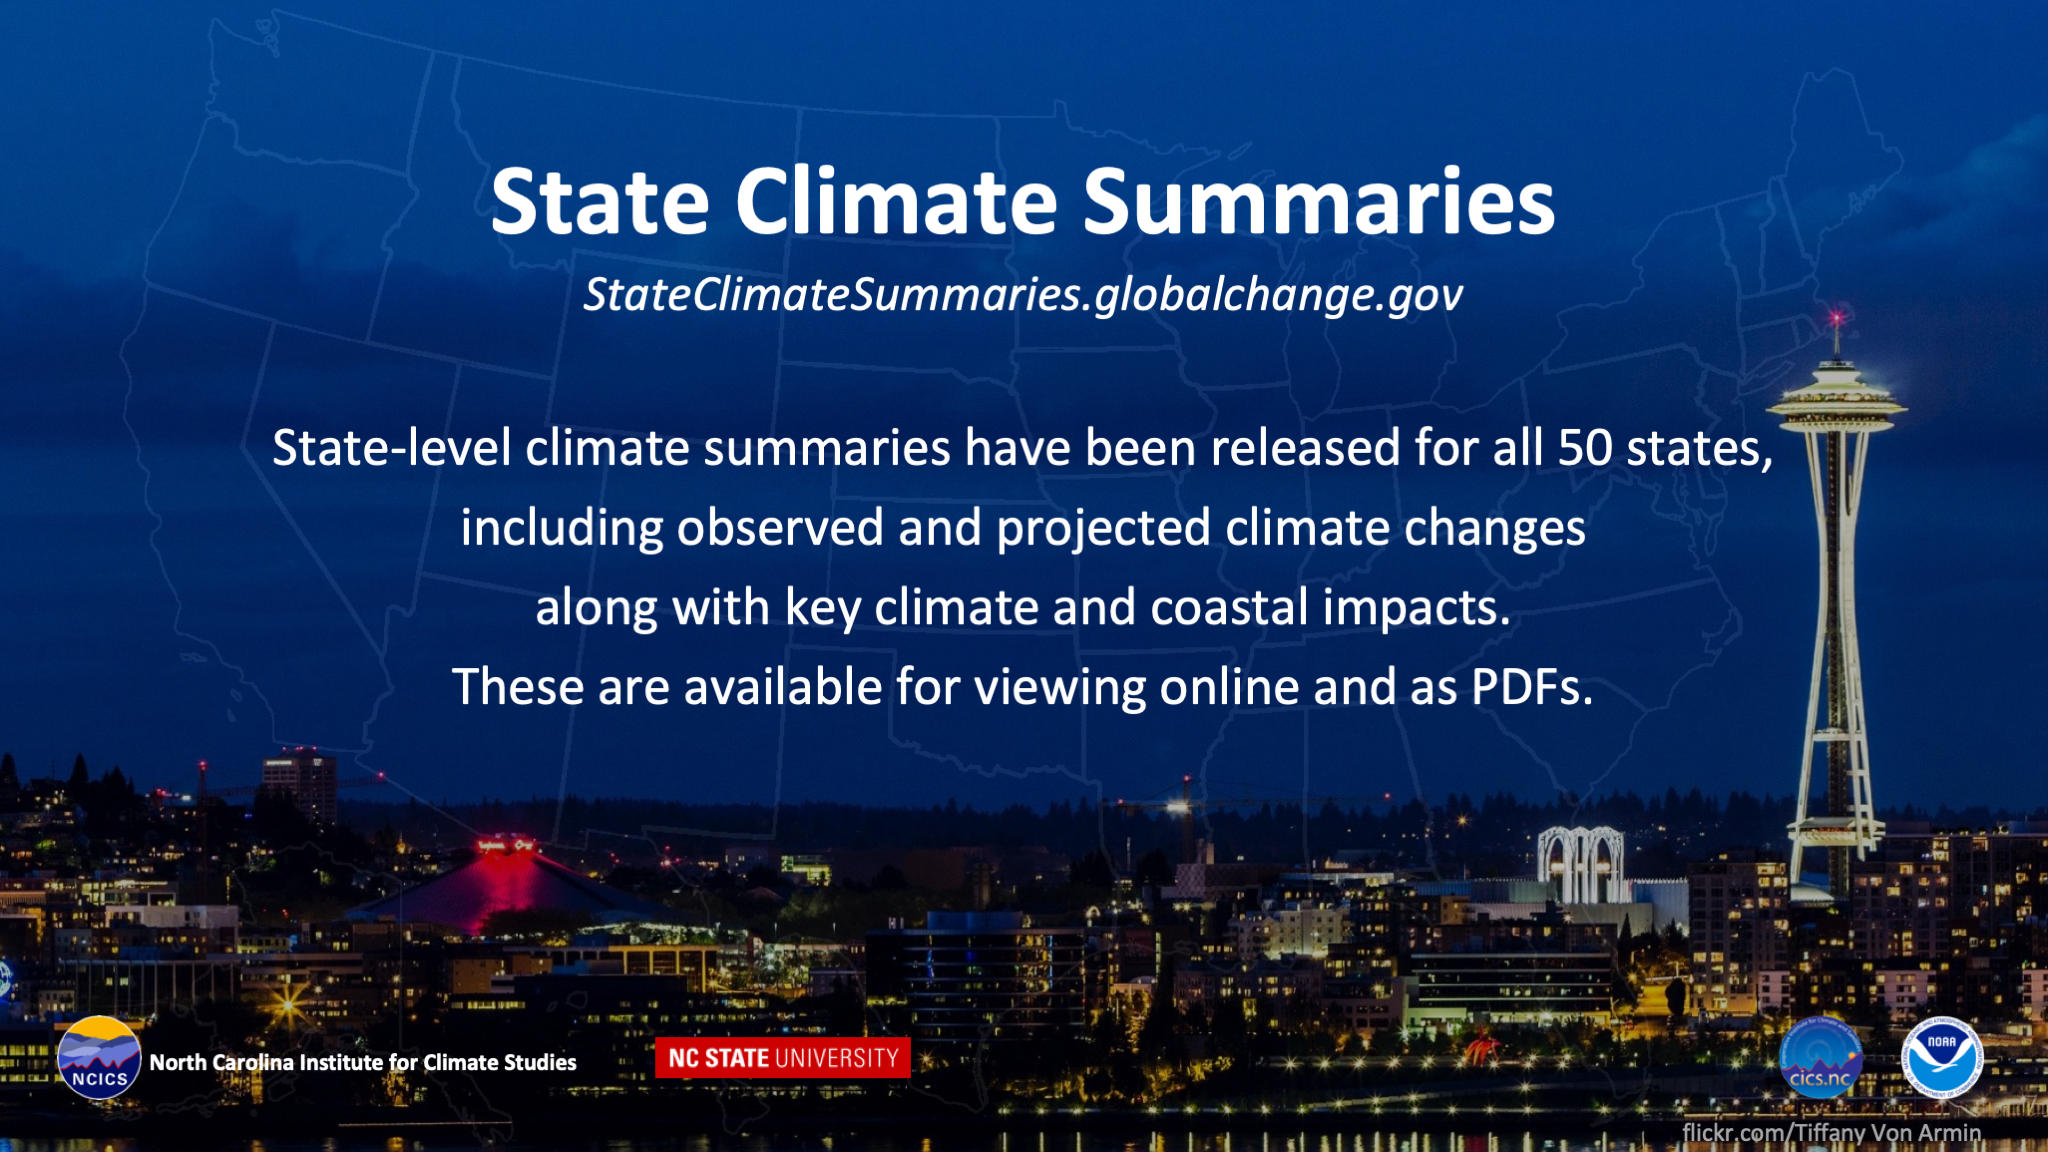 State Climate Summaries